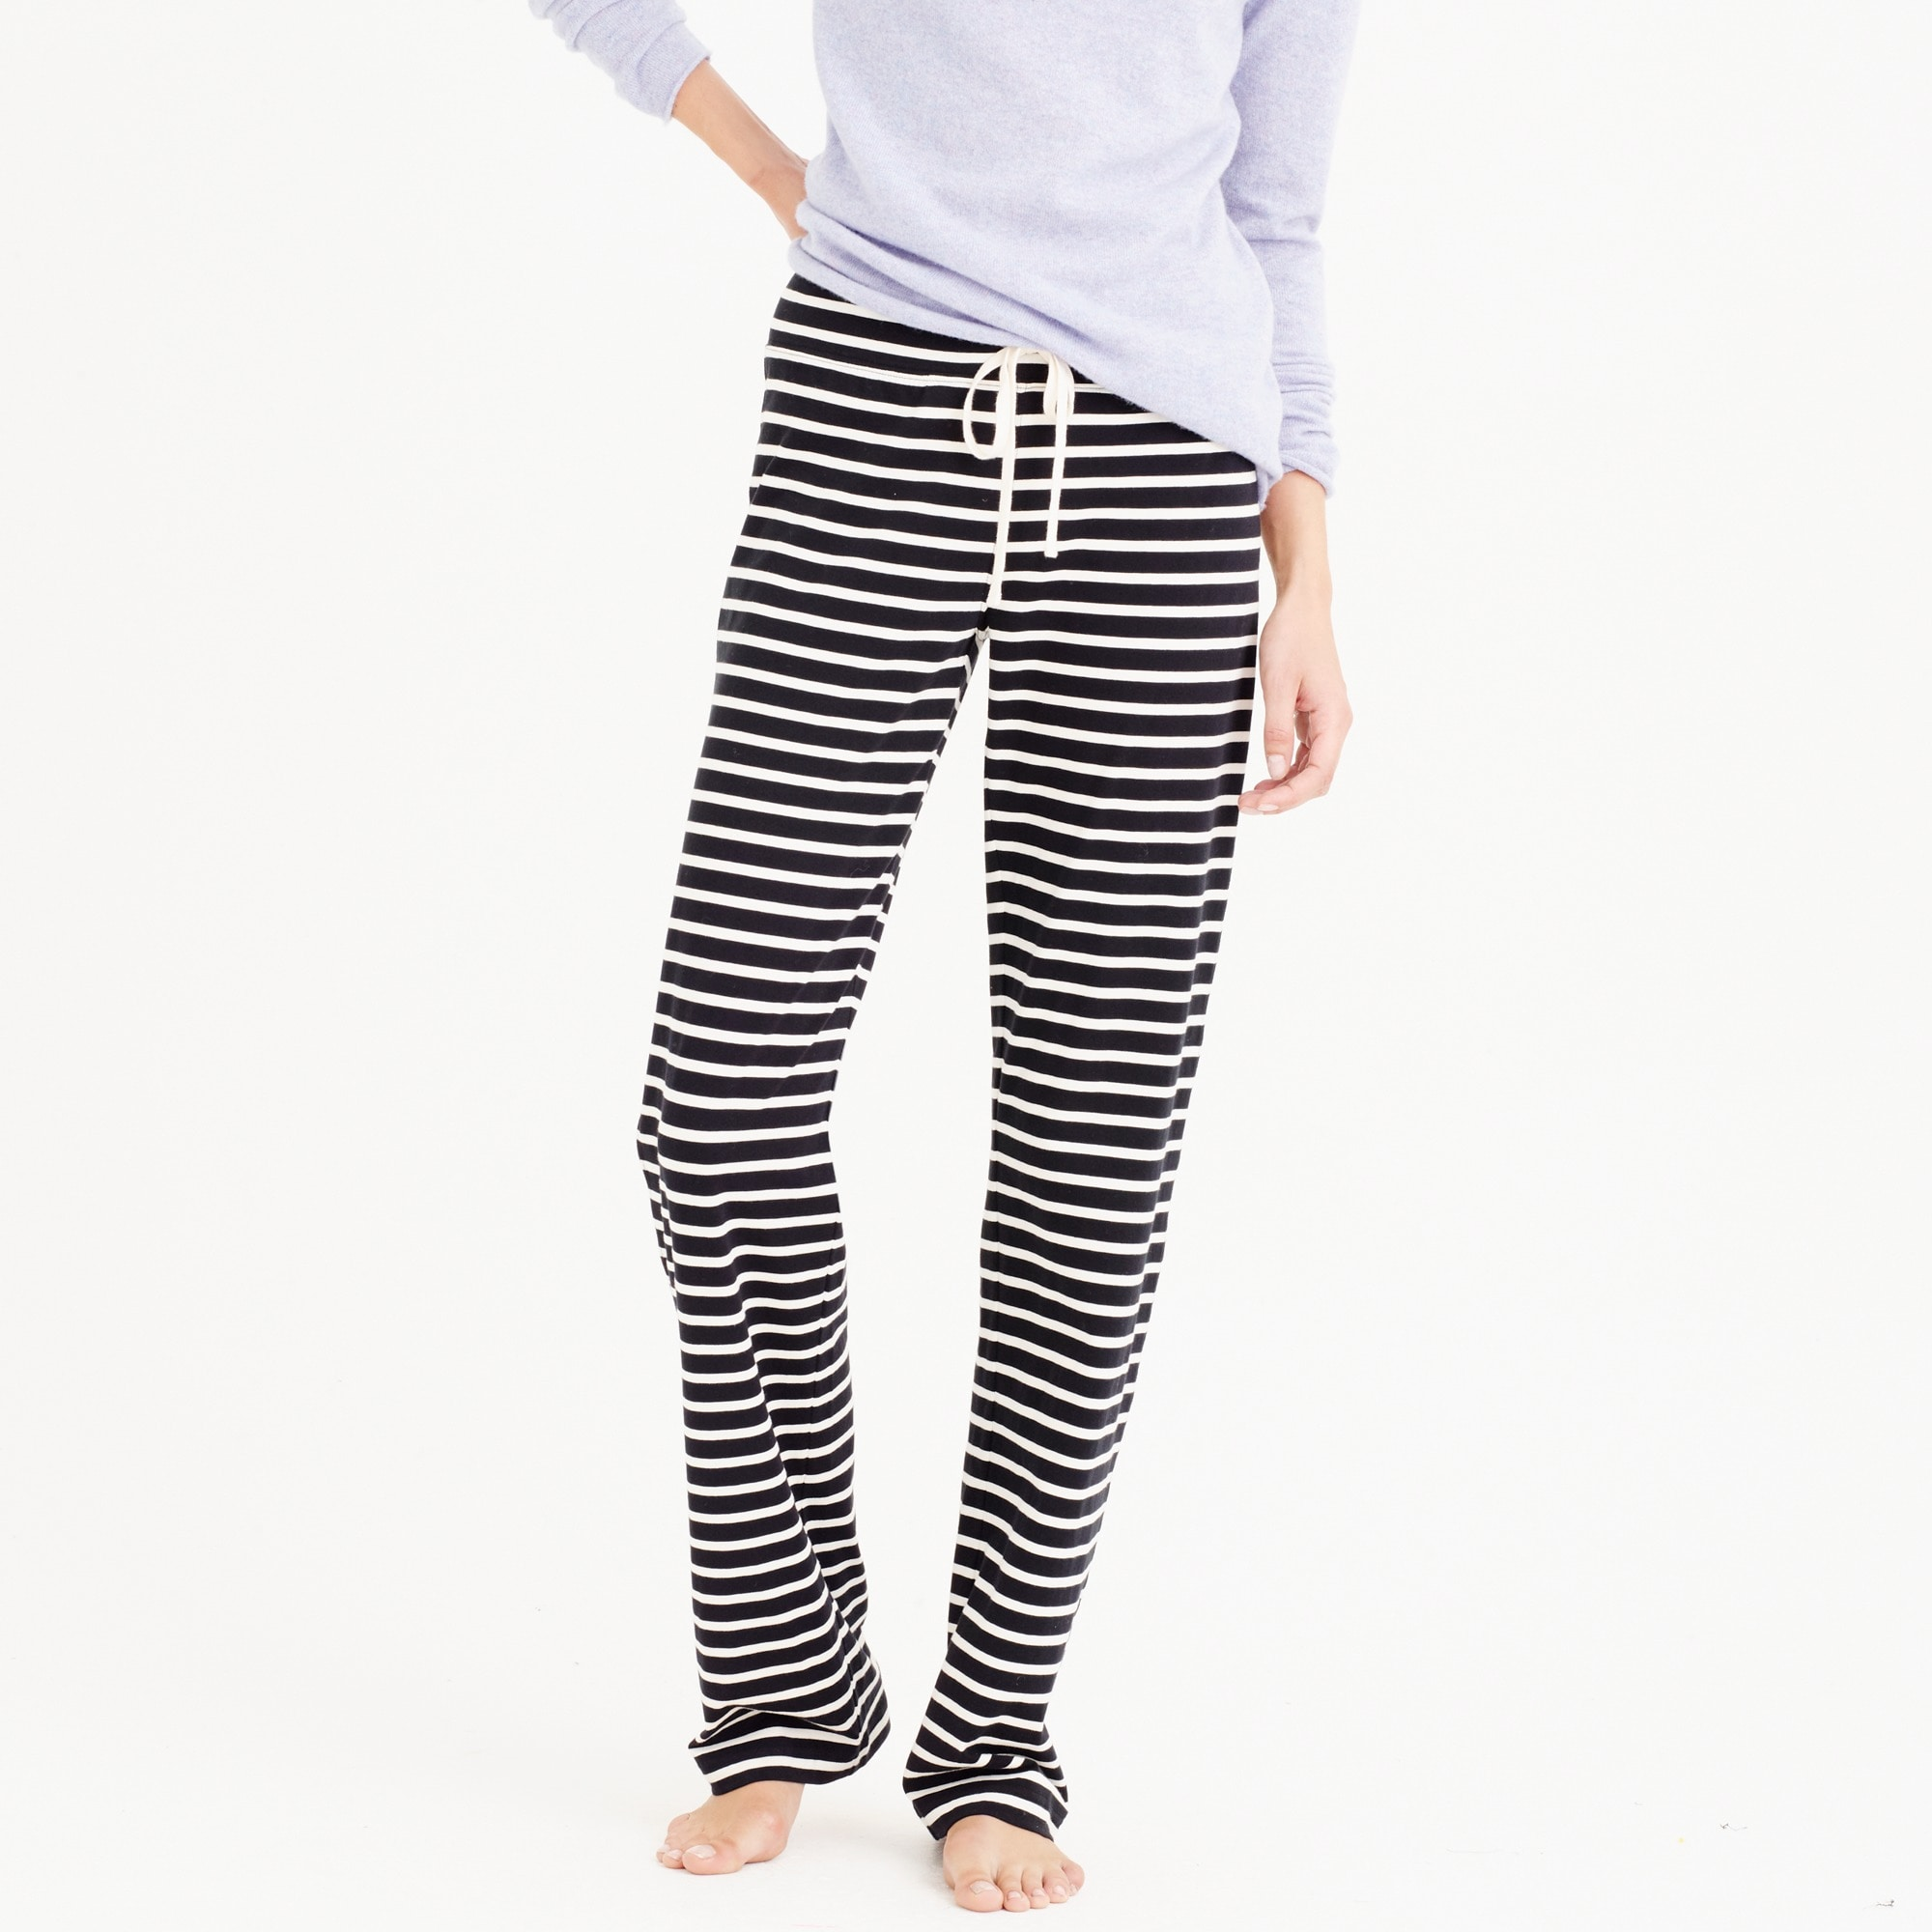 women's tall dreamy cotton pant in stripe - women's lounge